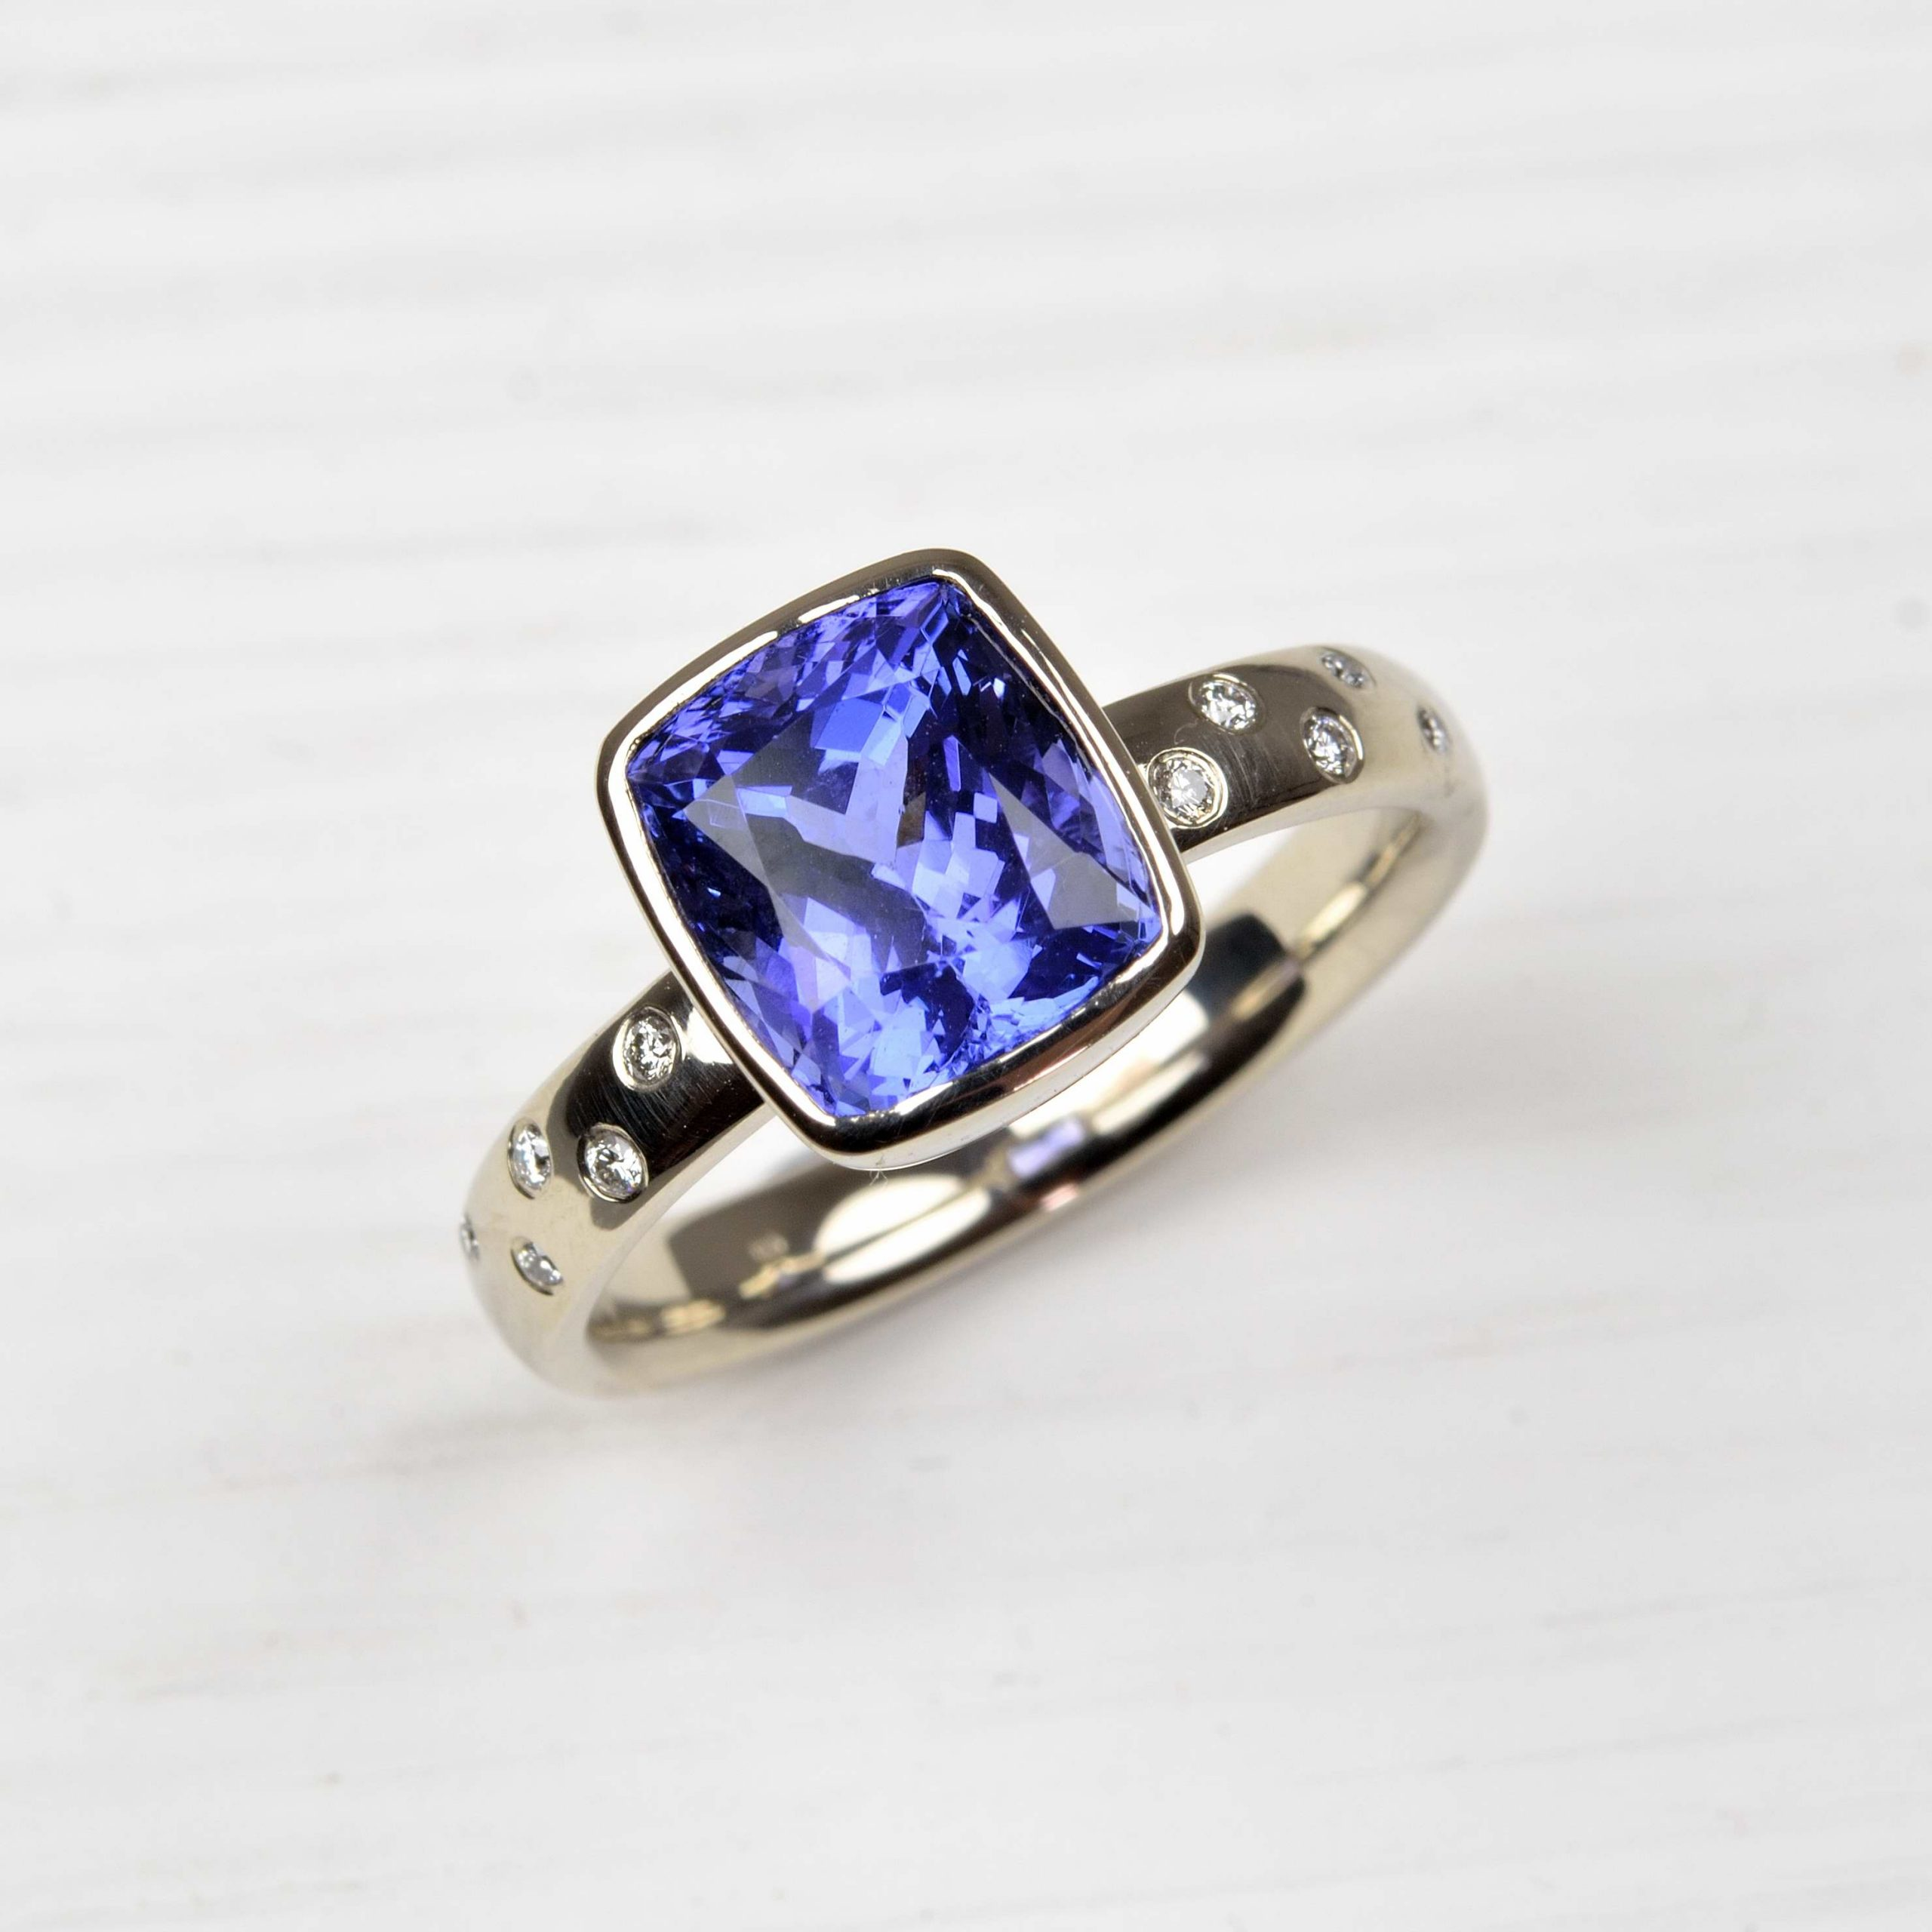 18ct white gold ring with tanzanite and diamonds